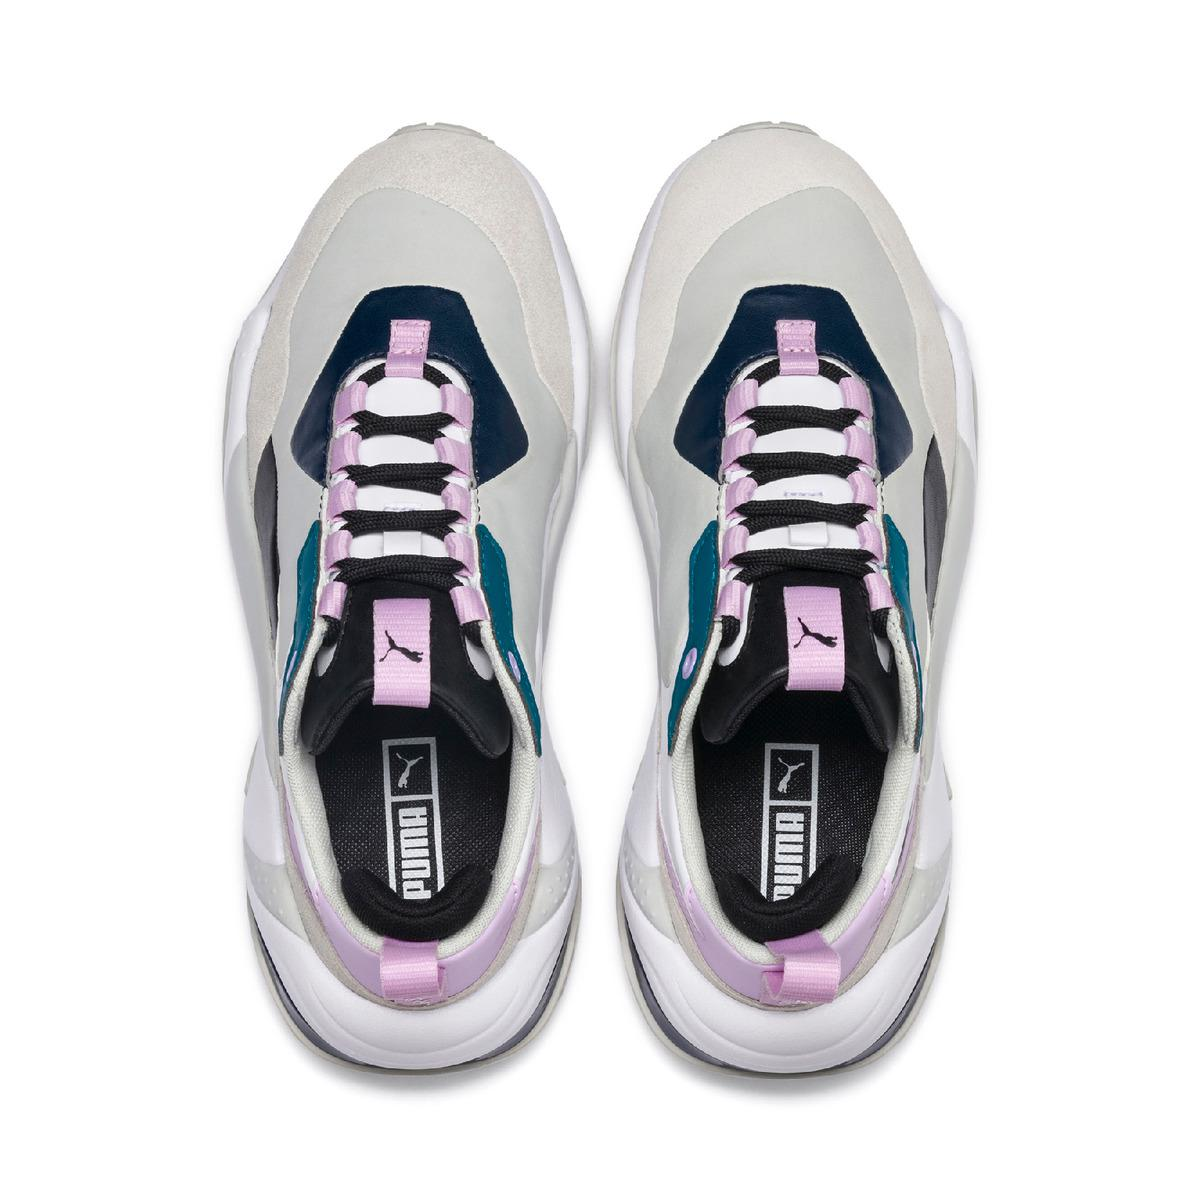 1ce3dc339b5 PUMA - Multicolor Thunder Rive Droite Casual Trainers - Lyst. View  fullscreen